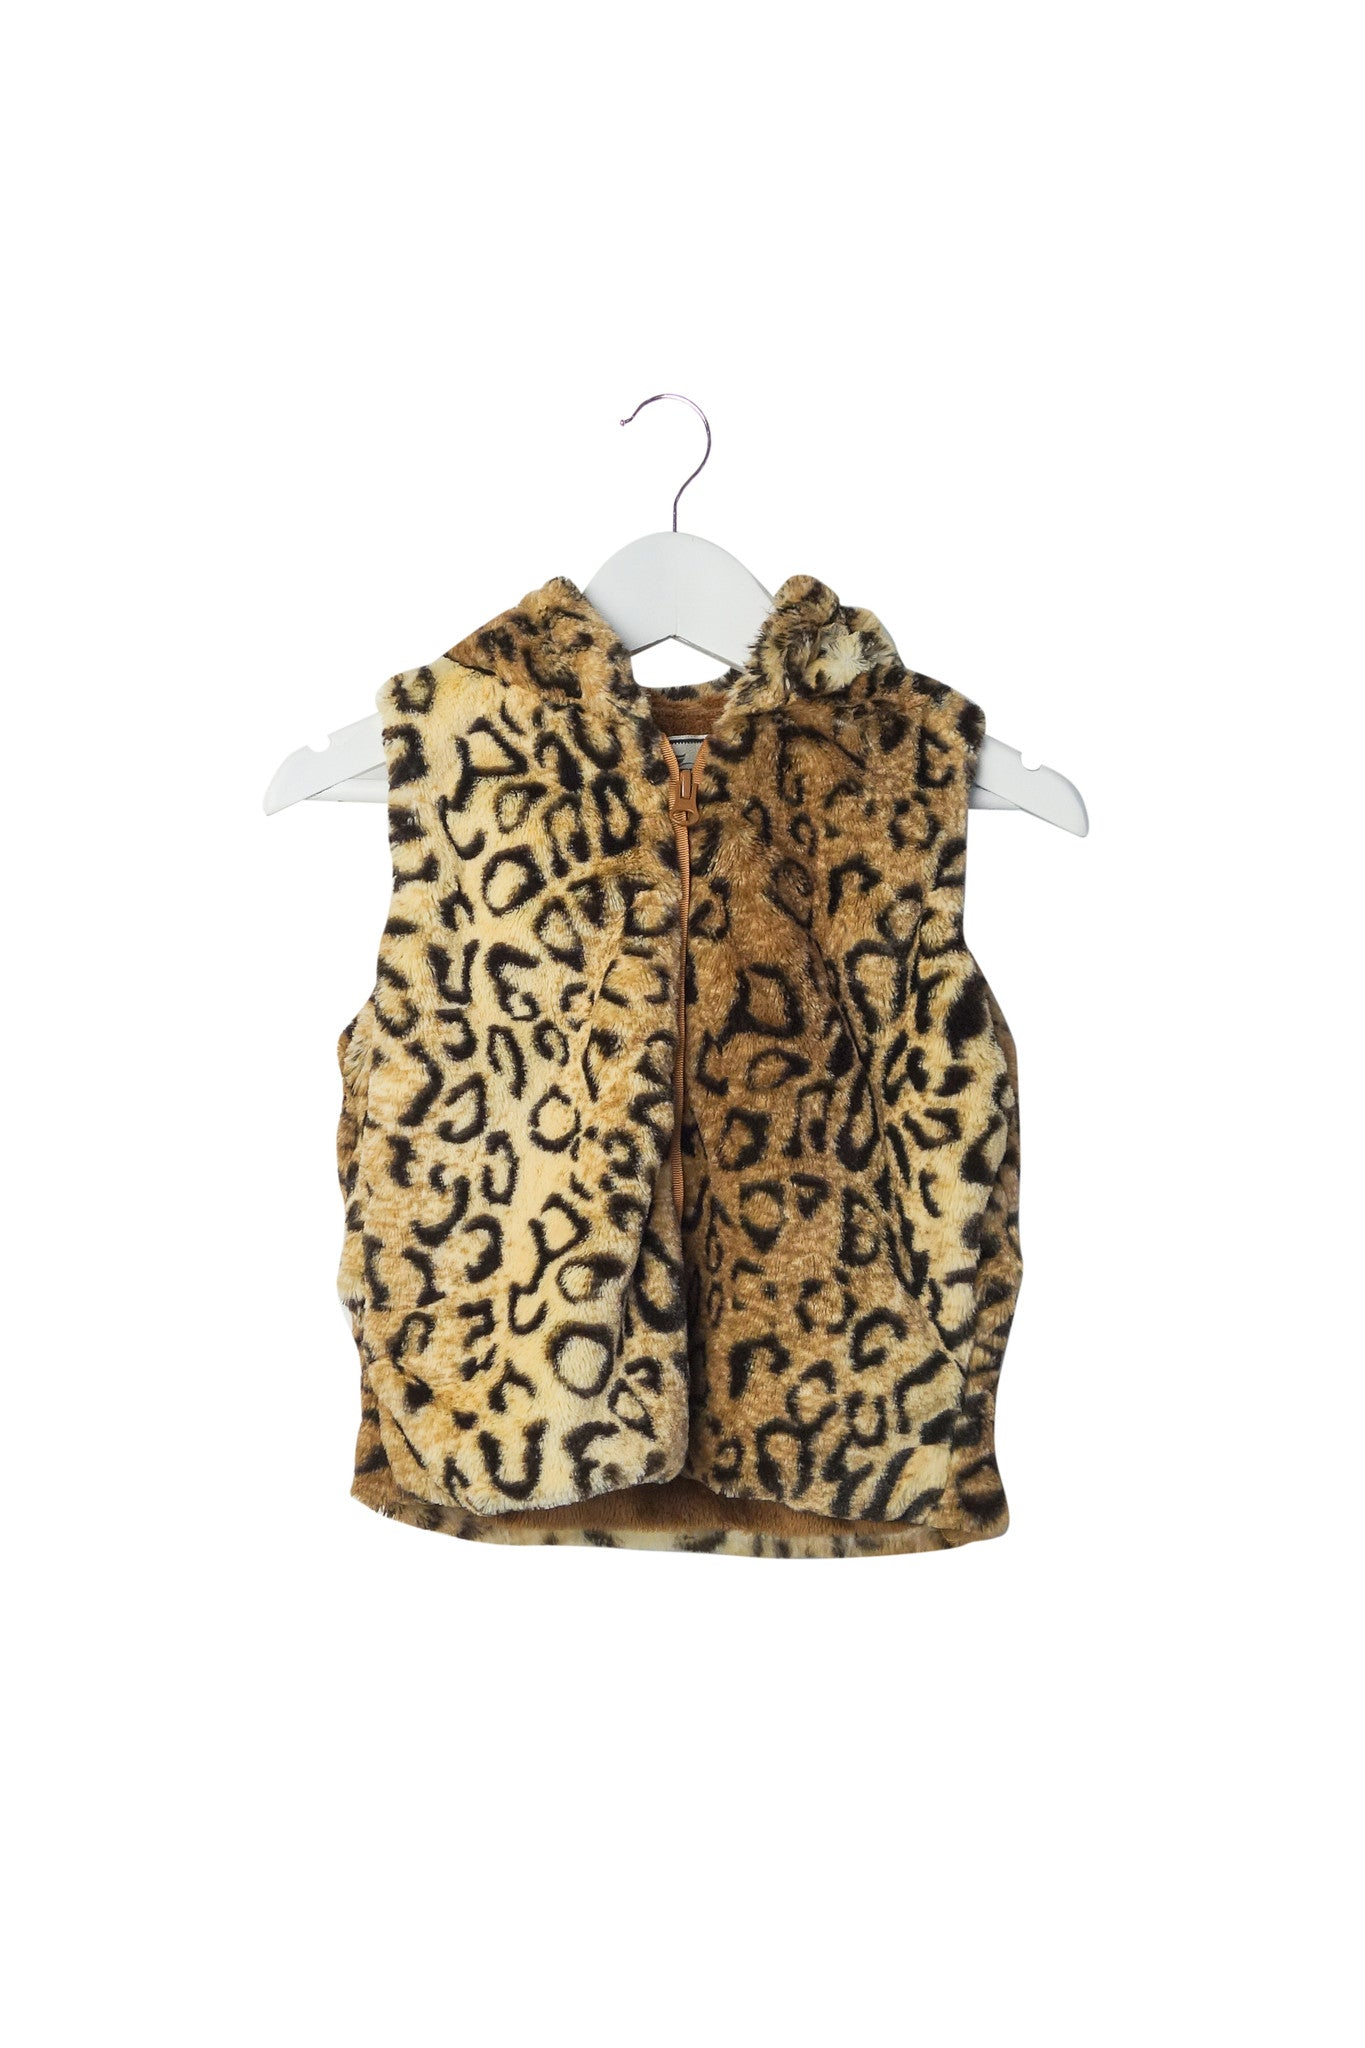 10003048 American Widgeon Kids~Fur Vest 3T at Retykle